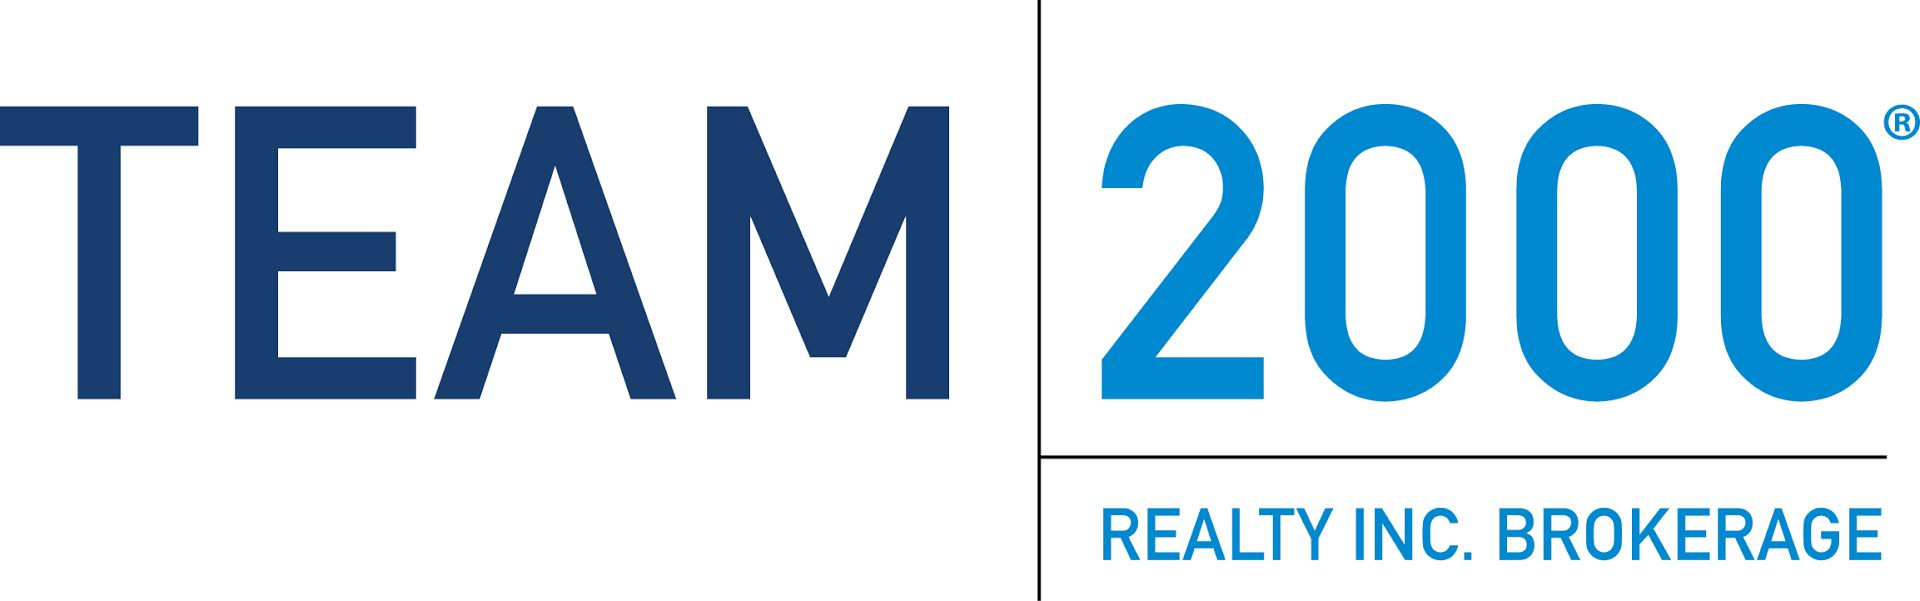 TEAM 2000 REALTY INC., Brokearge*